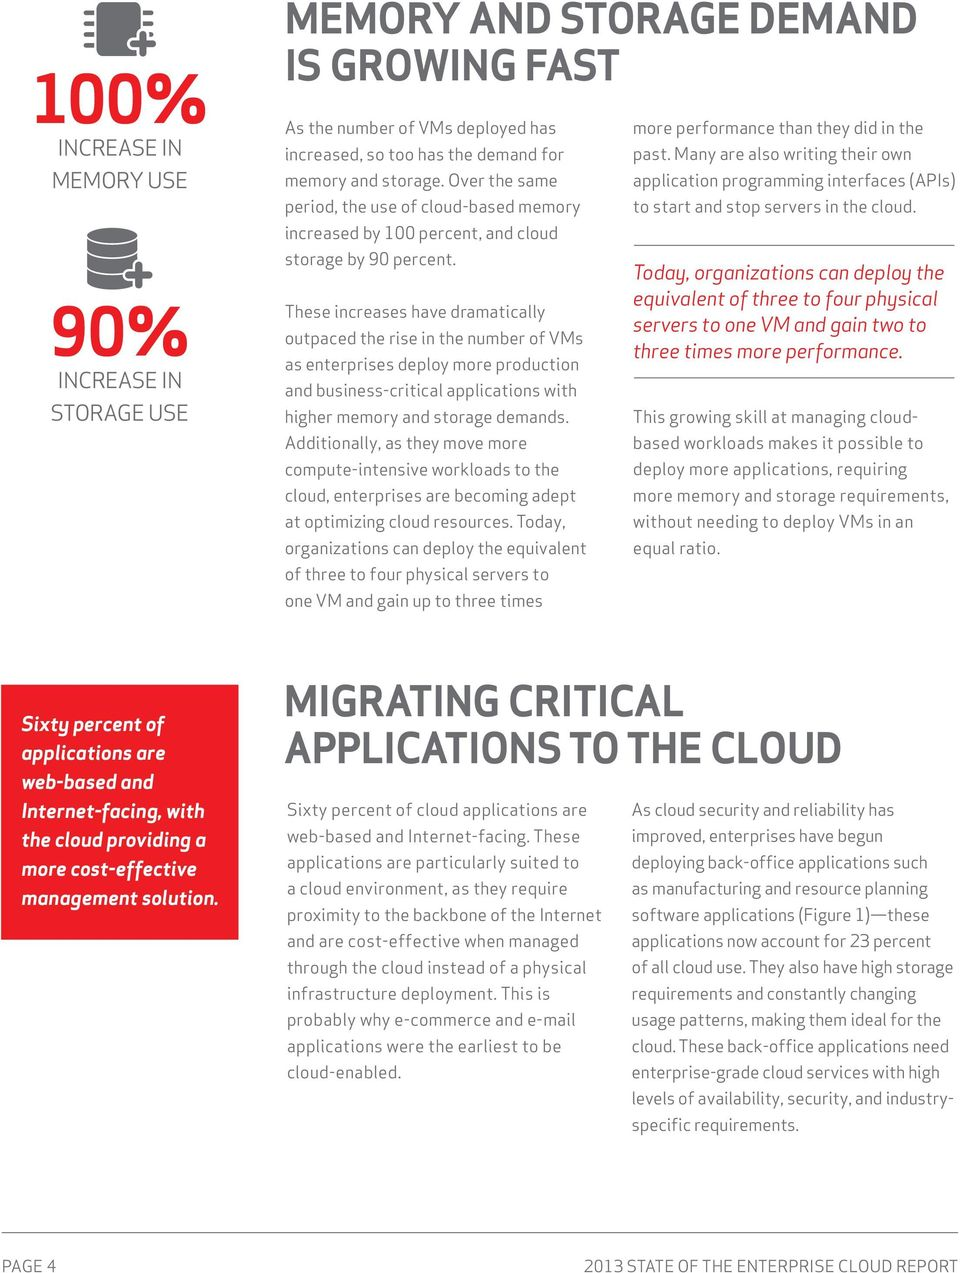 These increases have dramatically outpaced the rise in the number of VMs as enterprises deploy more production and business-critical applications with higher memory and storage demands.